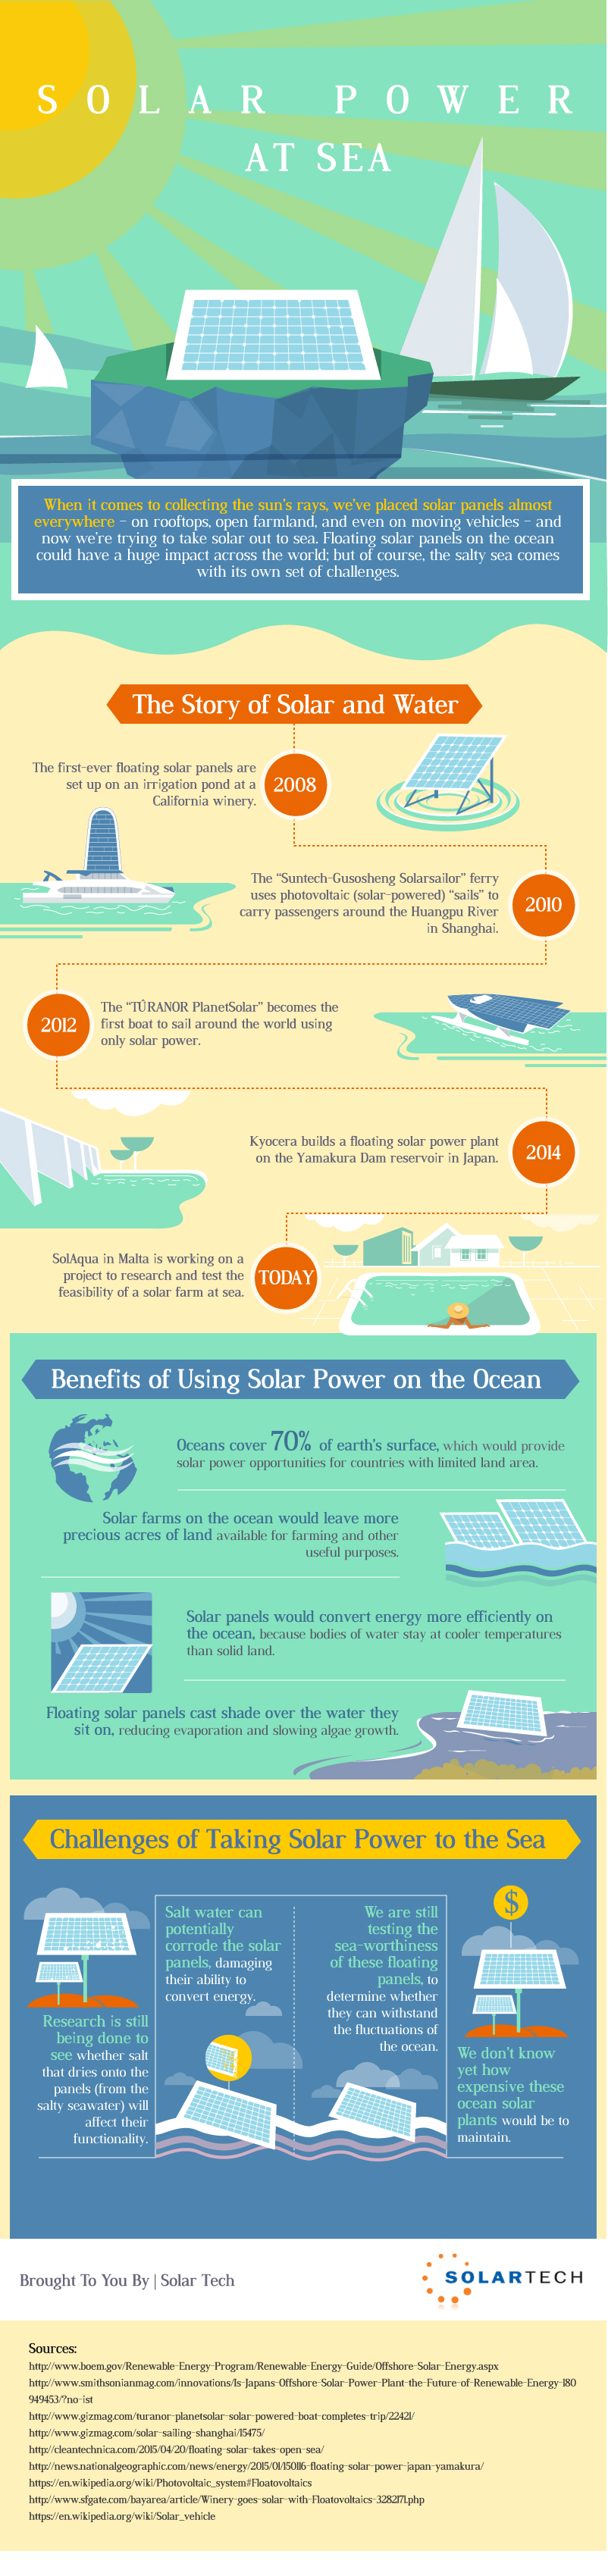 solar power at sea infographic